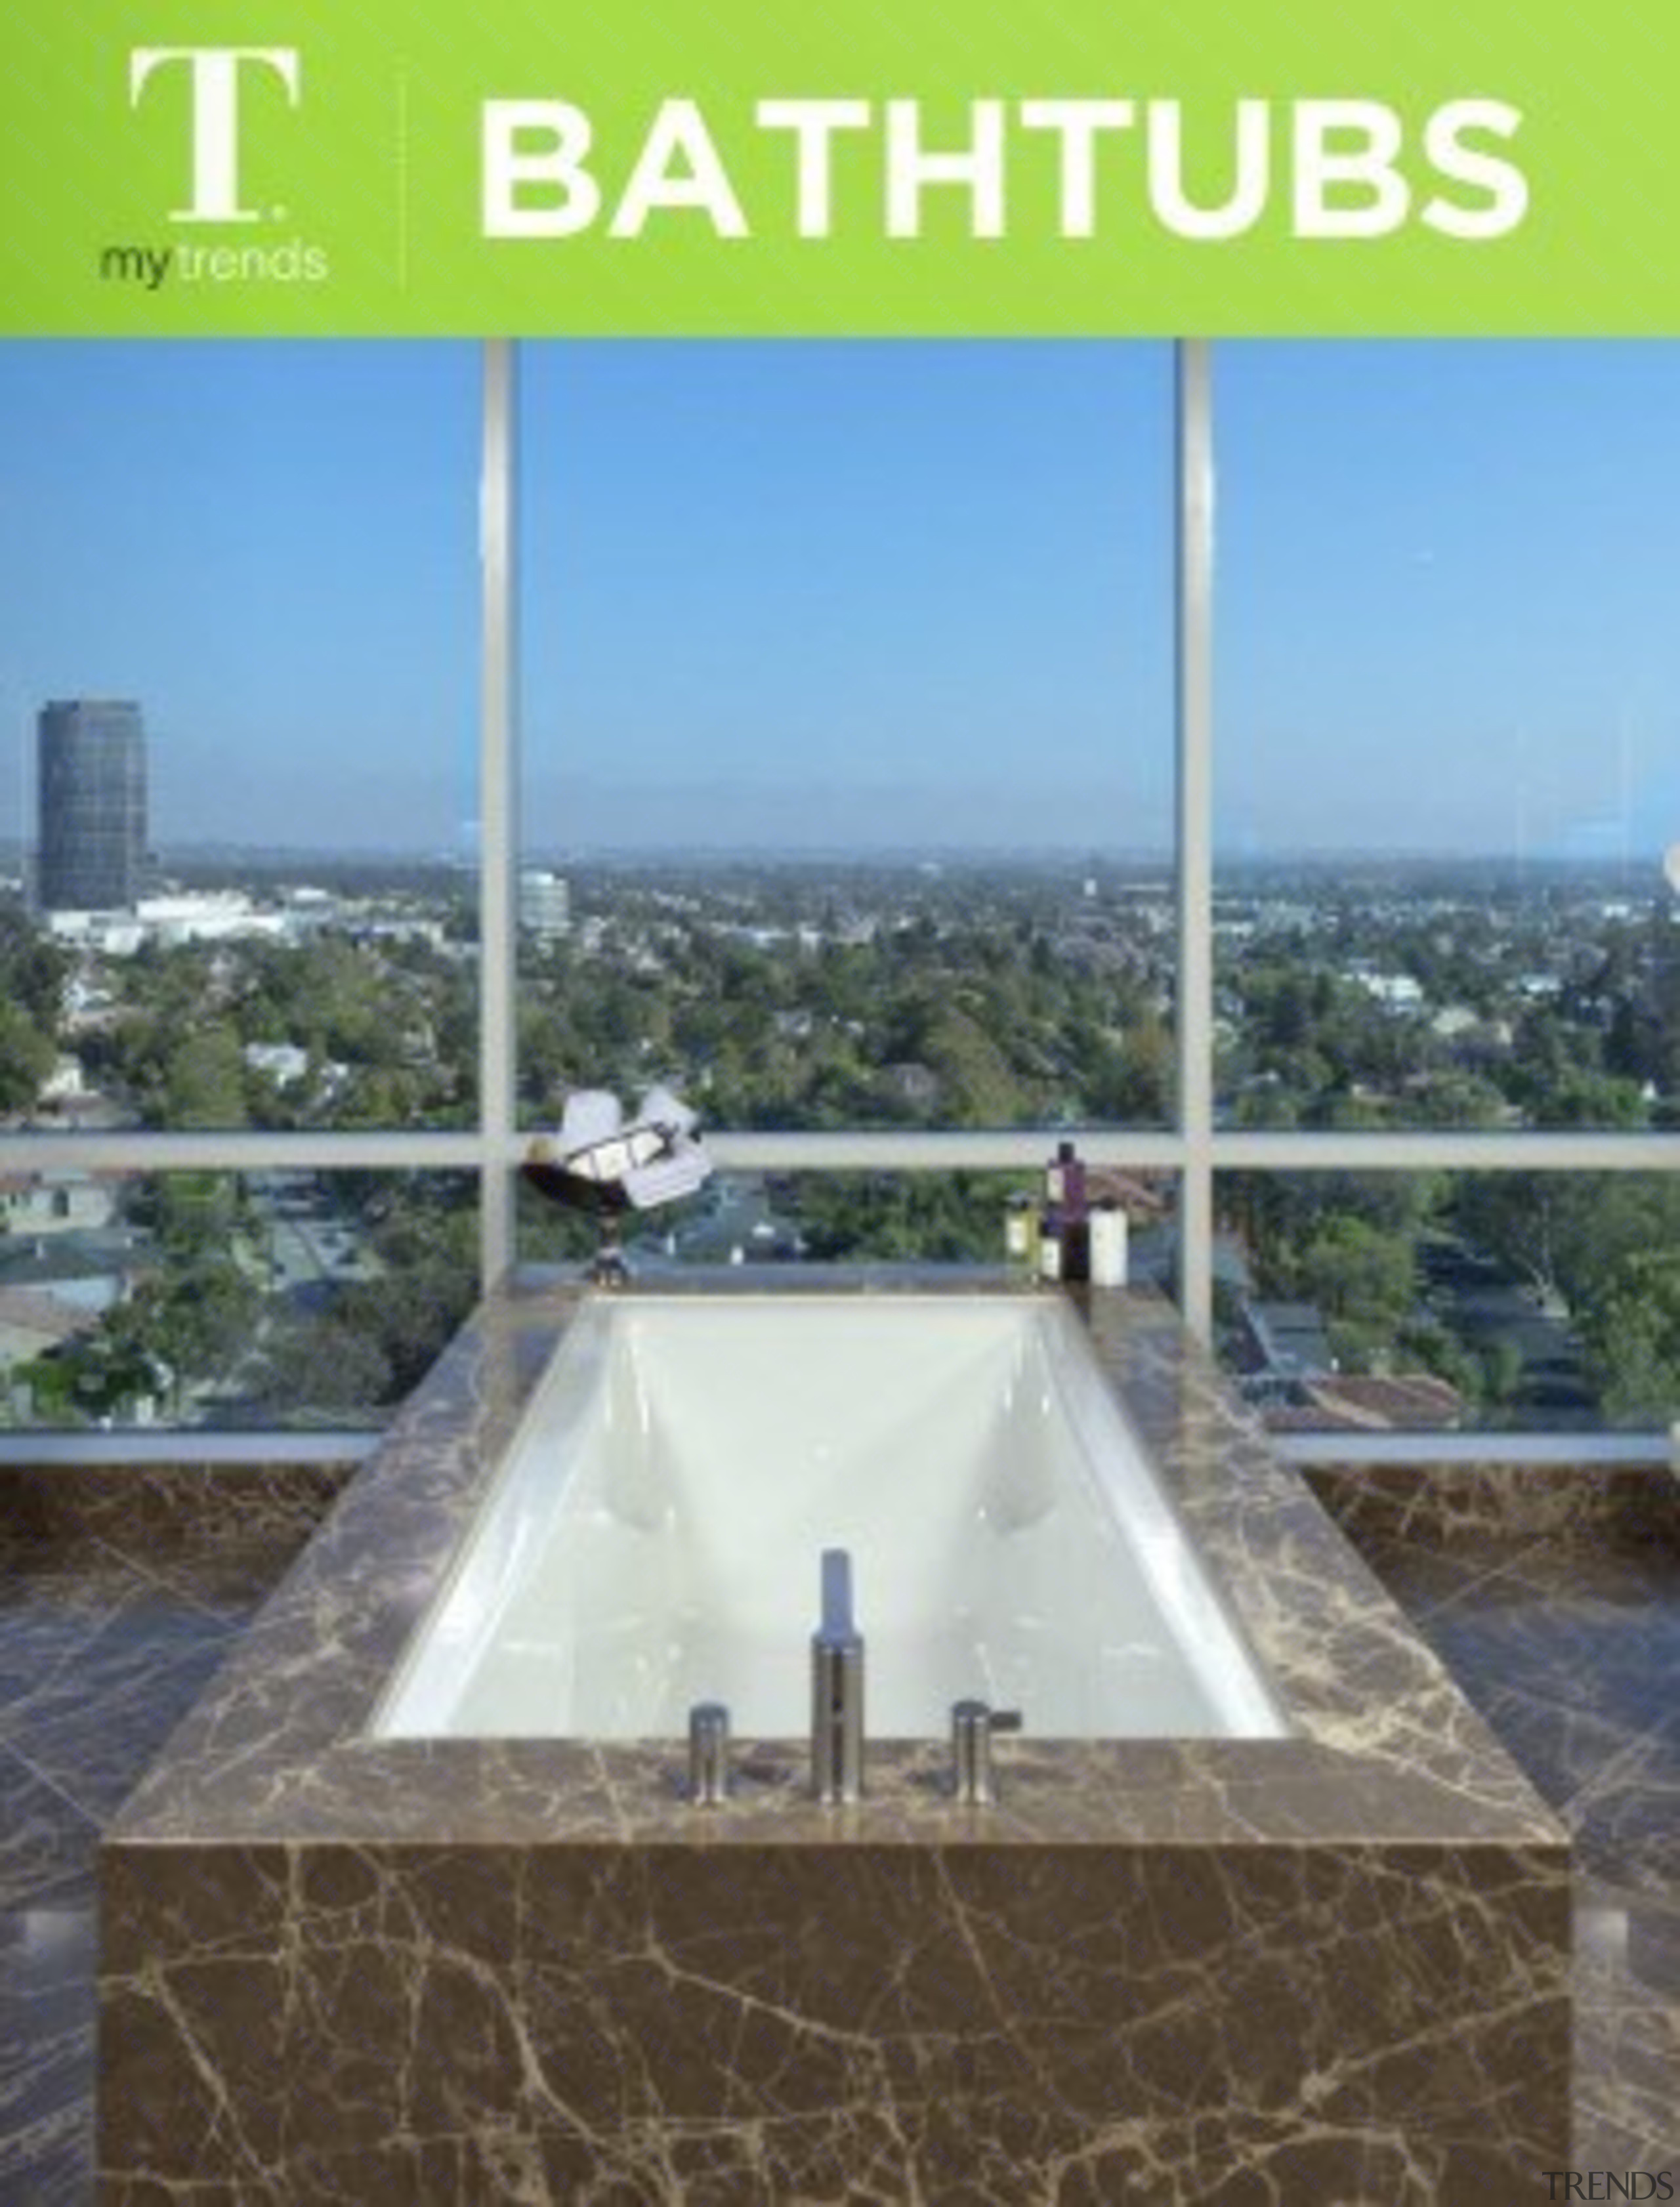 Bathtubs architecture, real estate, teal